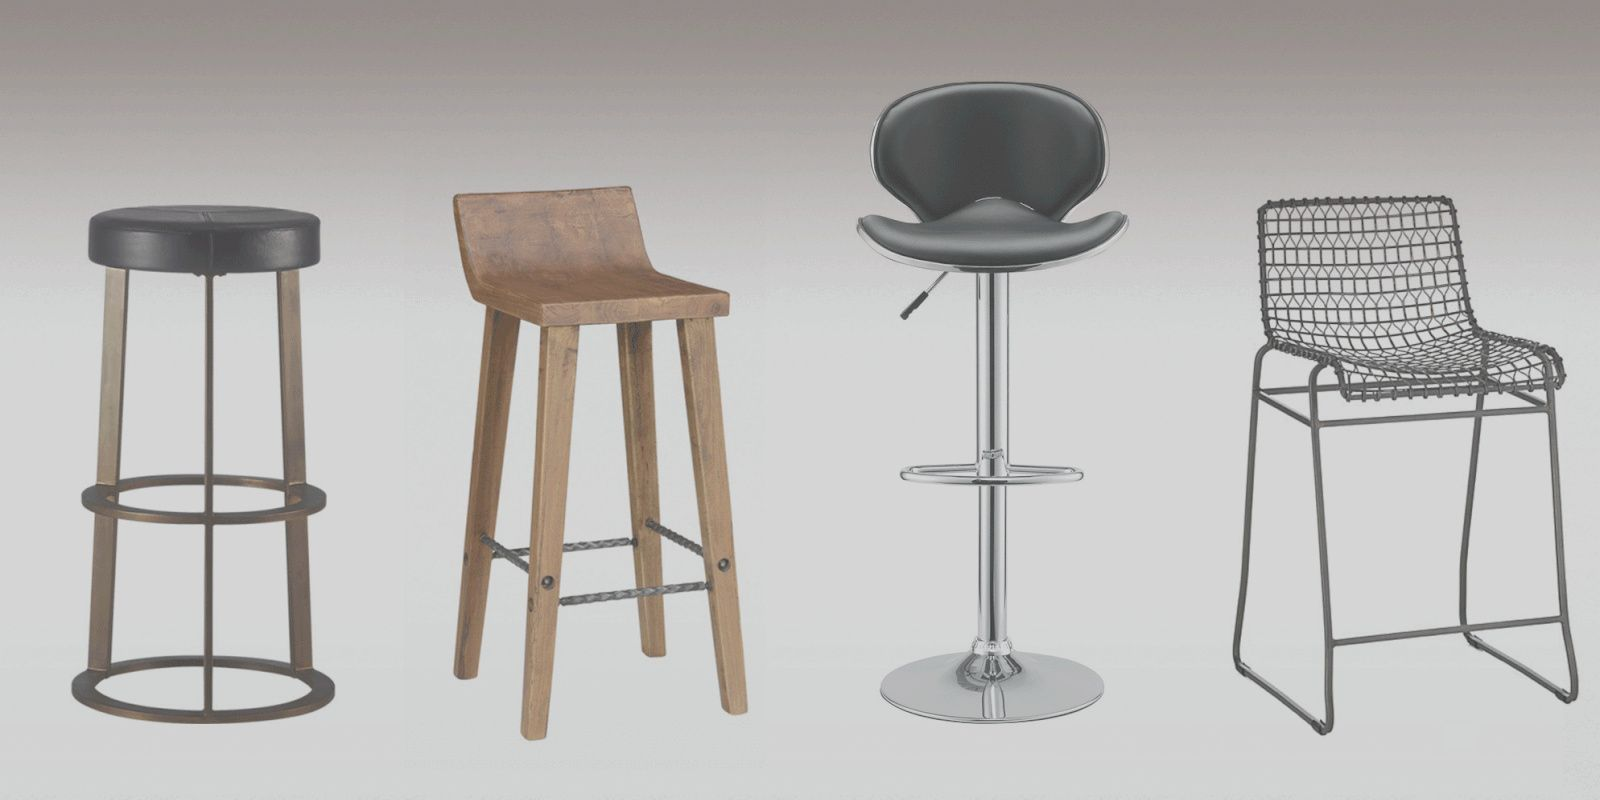 5 Fantastic Kitchen Chairs Under $5 Image di 55